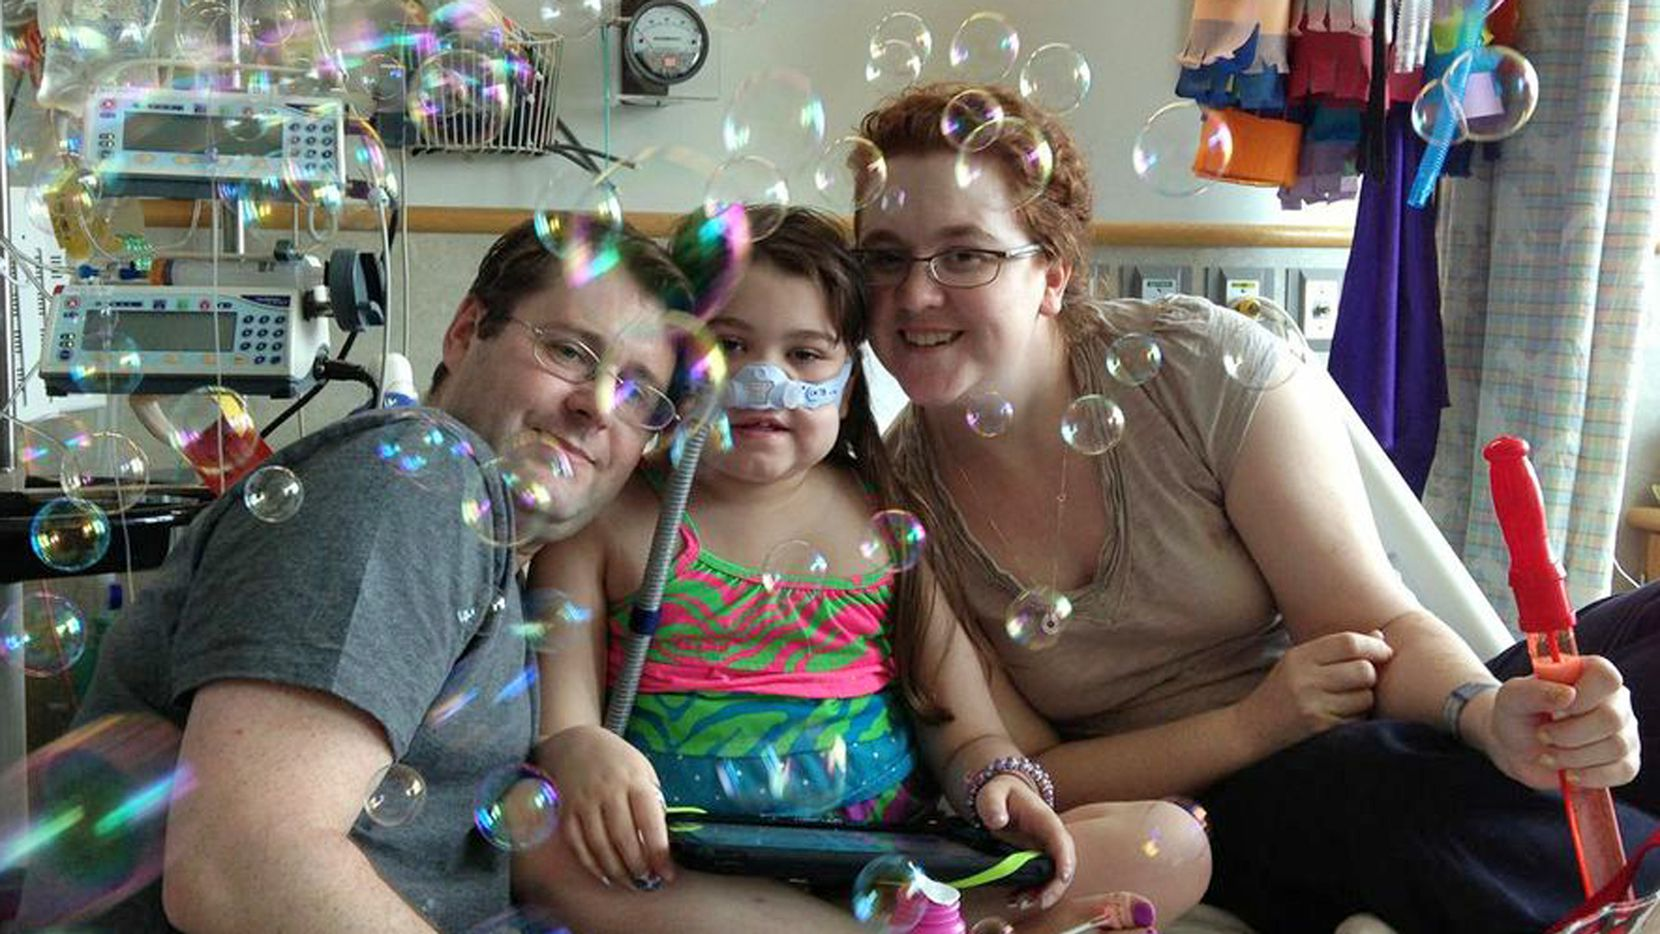 In this May 30, 2013 file photo provided by the Murnaghan family, Sarah Murnaghan, center, celebrates the 100th day of her stay in Children's Hospital of Philadelphia with her father, Fran, left, and mother, Janet. The 10-year-old suburban Philadelphia girl received a lung transplant there June 12, 2013, her family said. (AP Photo/Murnaghan Family, File)